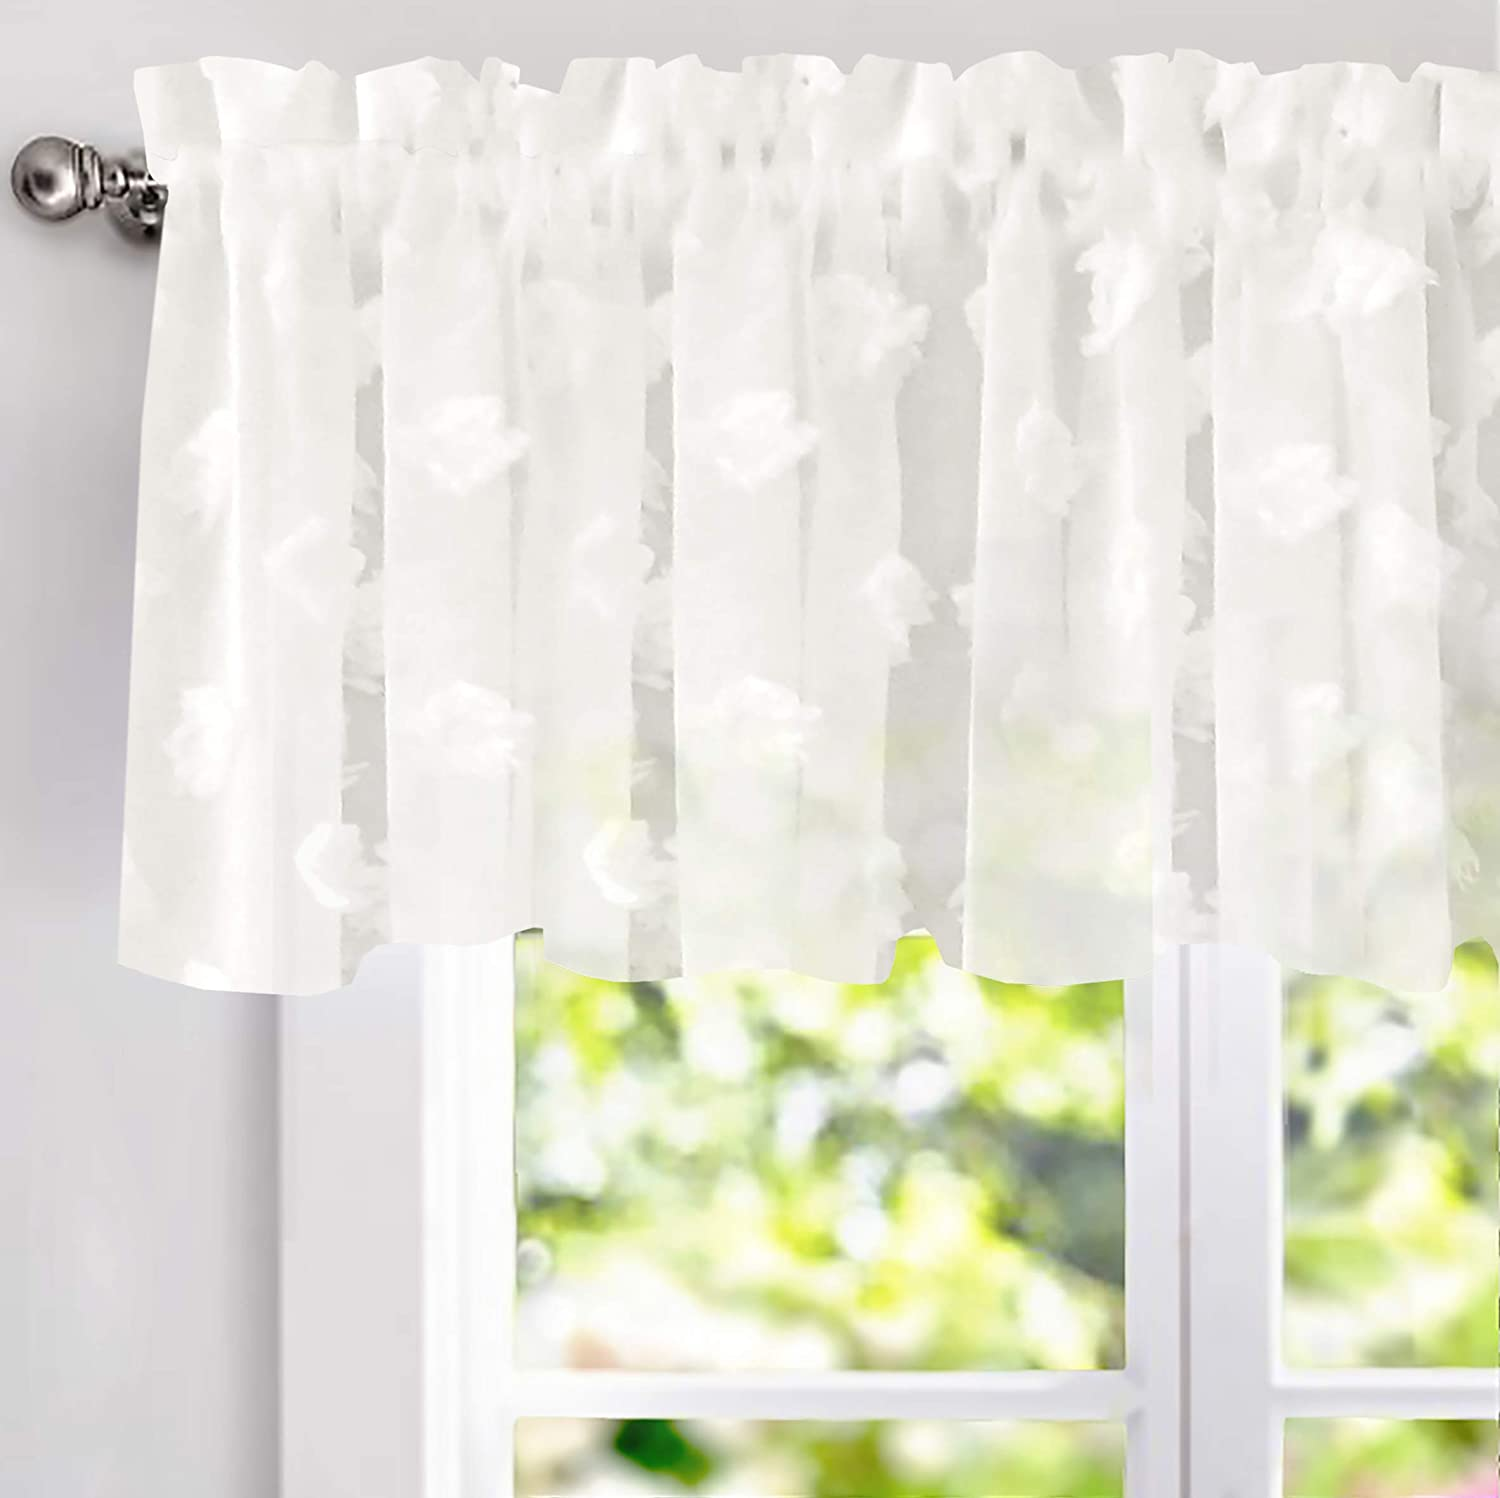 Amazon Com Driftaway Olivia White Voile Chiffon Sheer Window Curtain Valance For Small Kitchen Embroidered Pom Single Rod Pocket 60 Inch By 18 Plus 2 Header Off